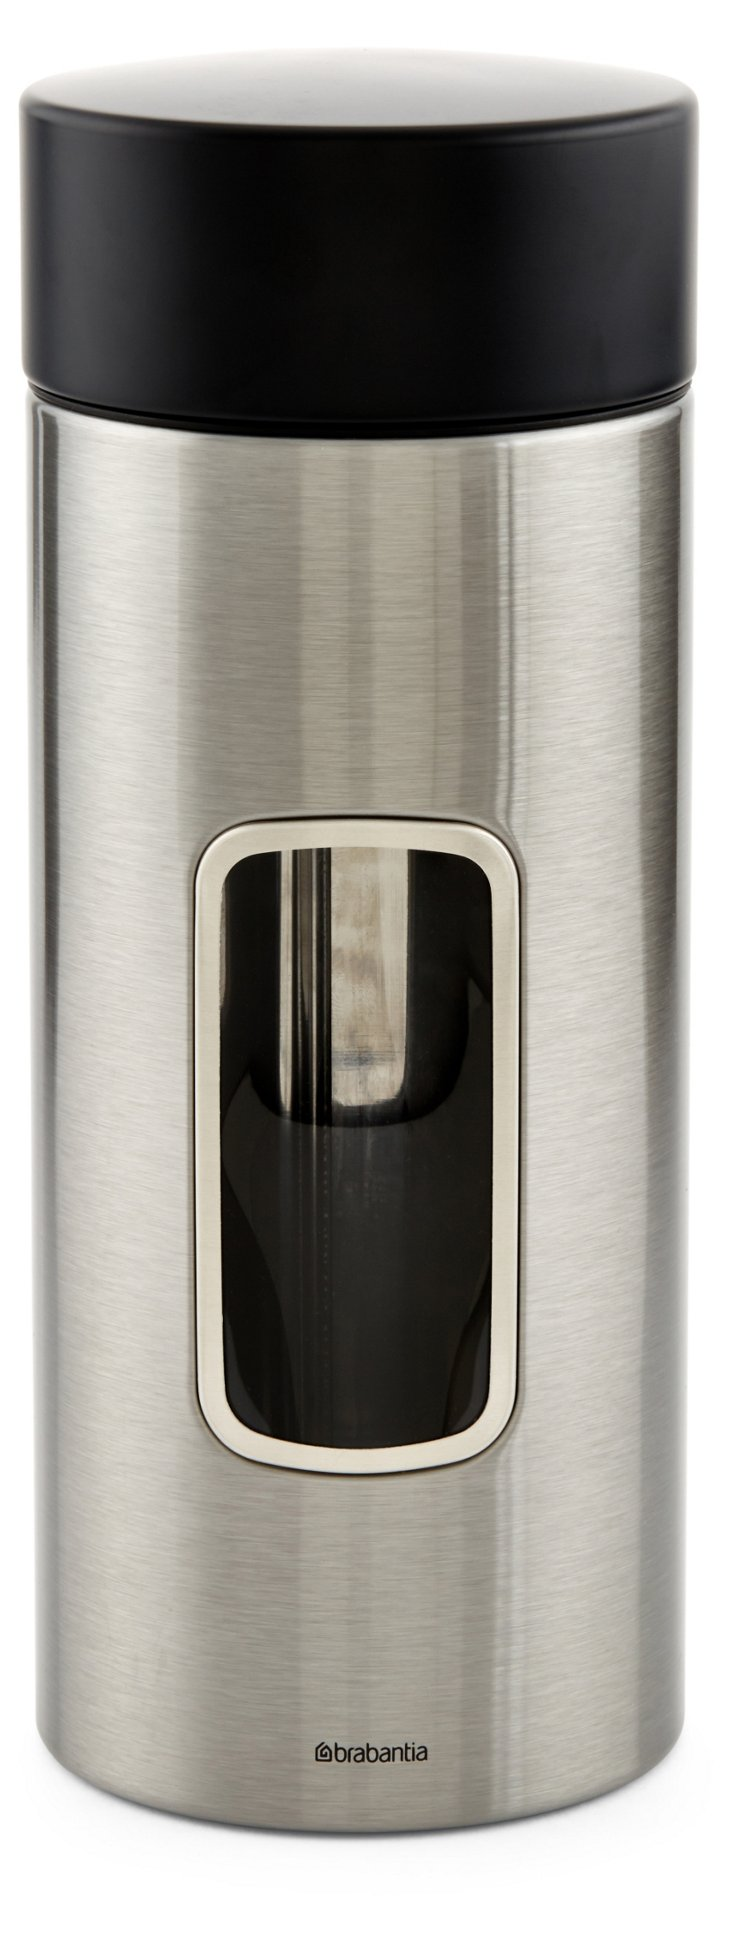 2.2L Window Canister, Silver